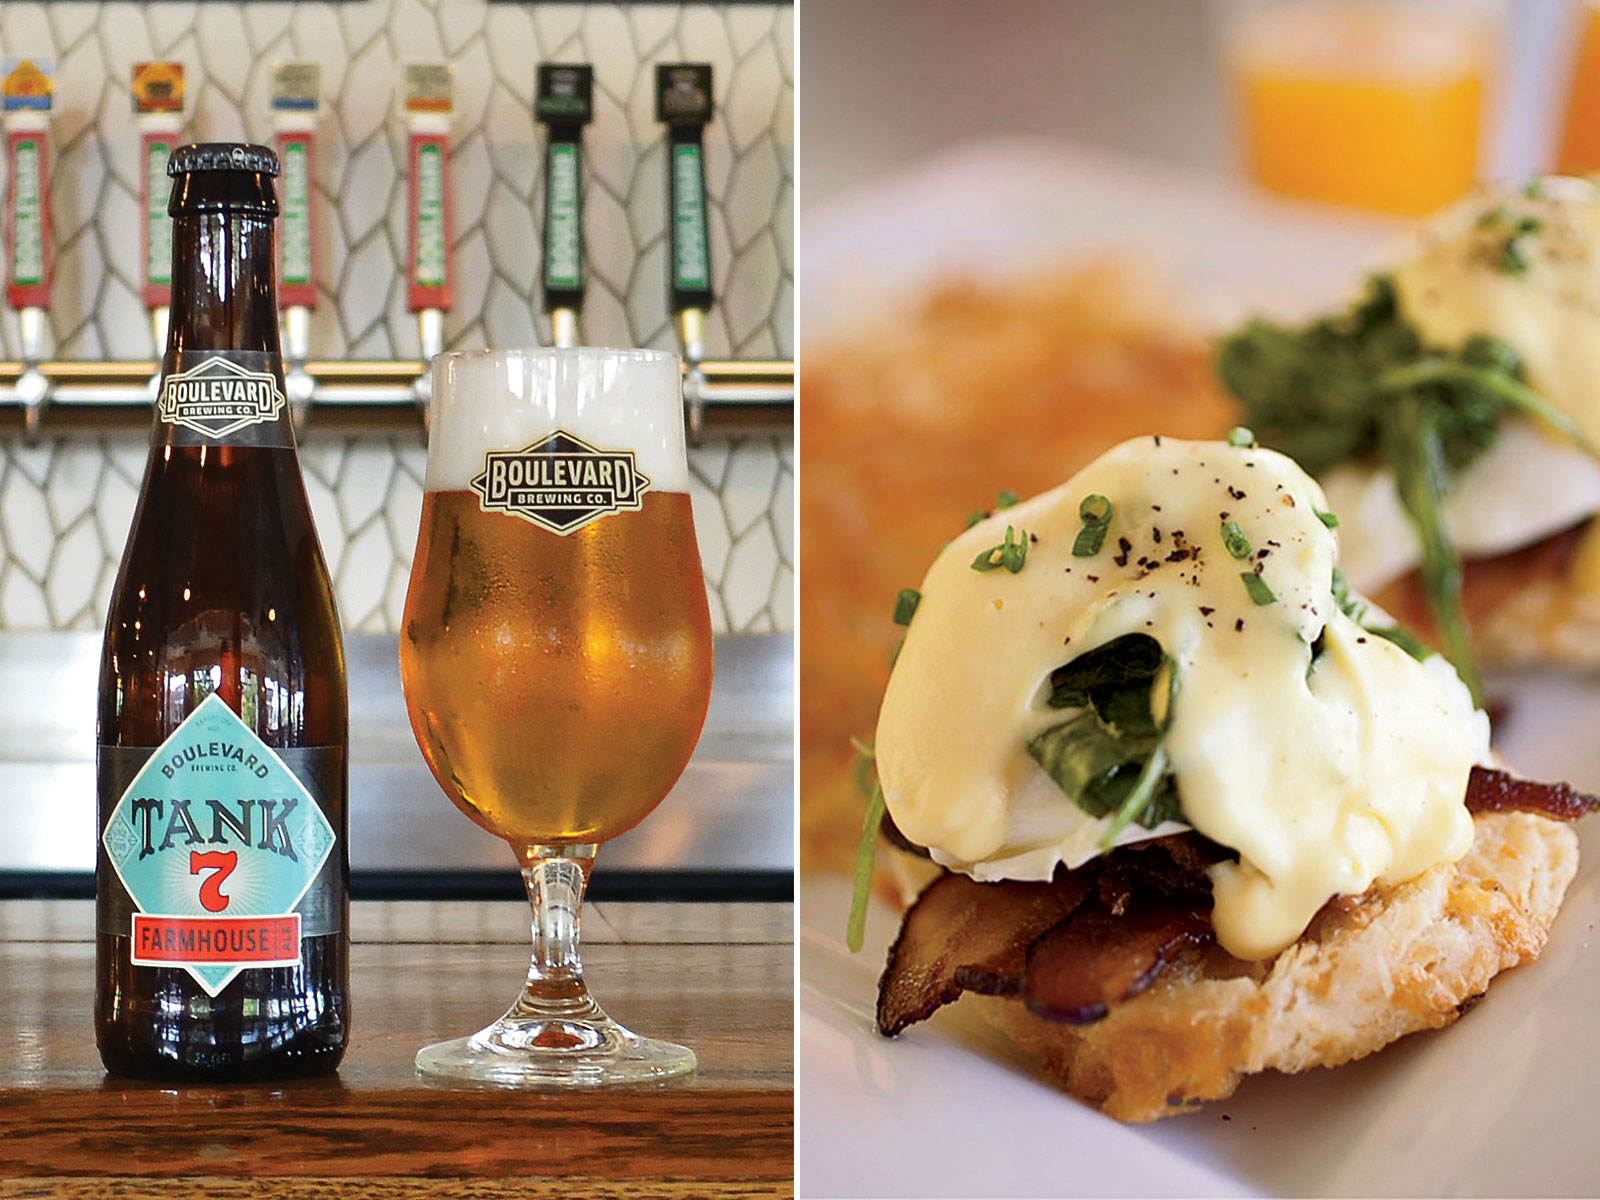 Eggs Benedict and Tank 7